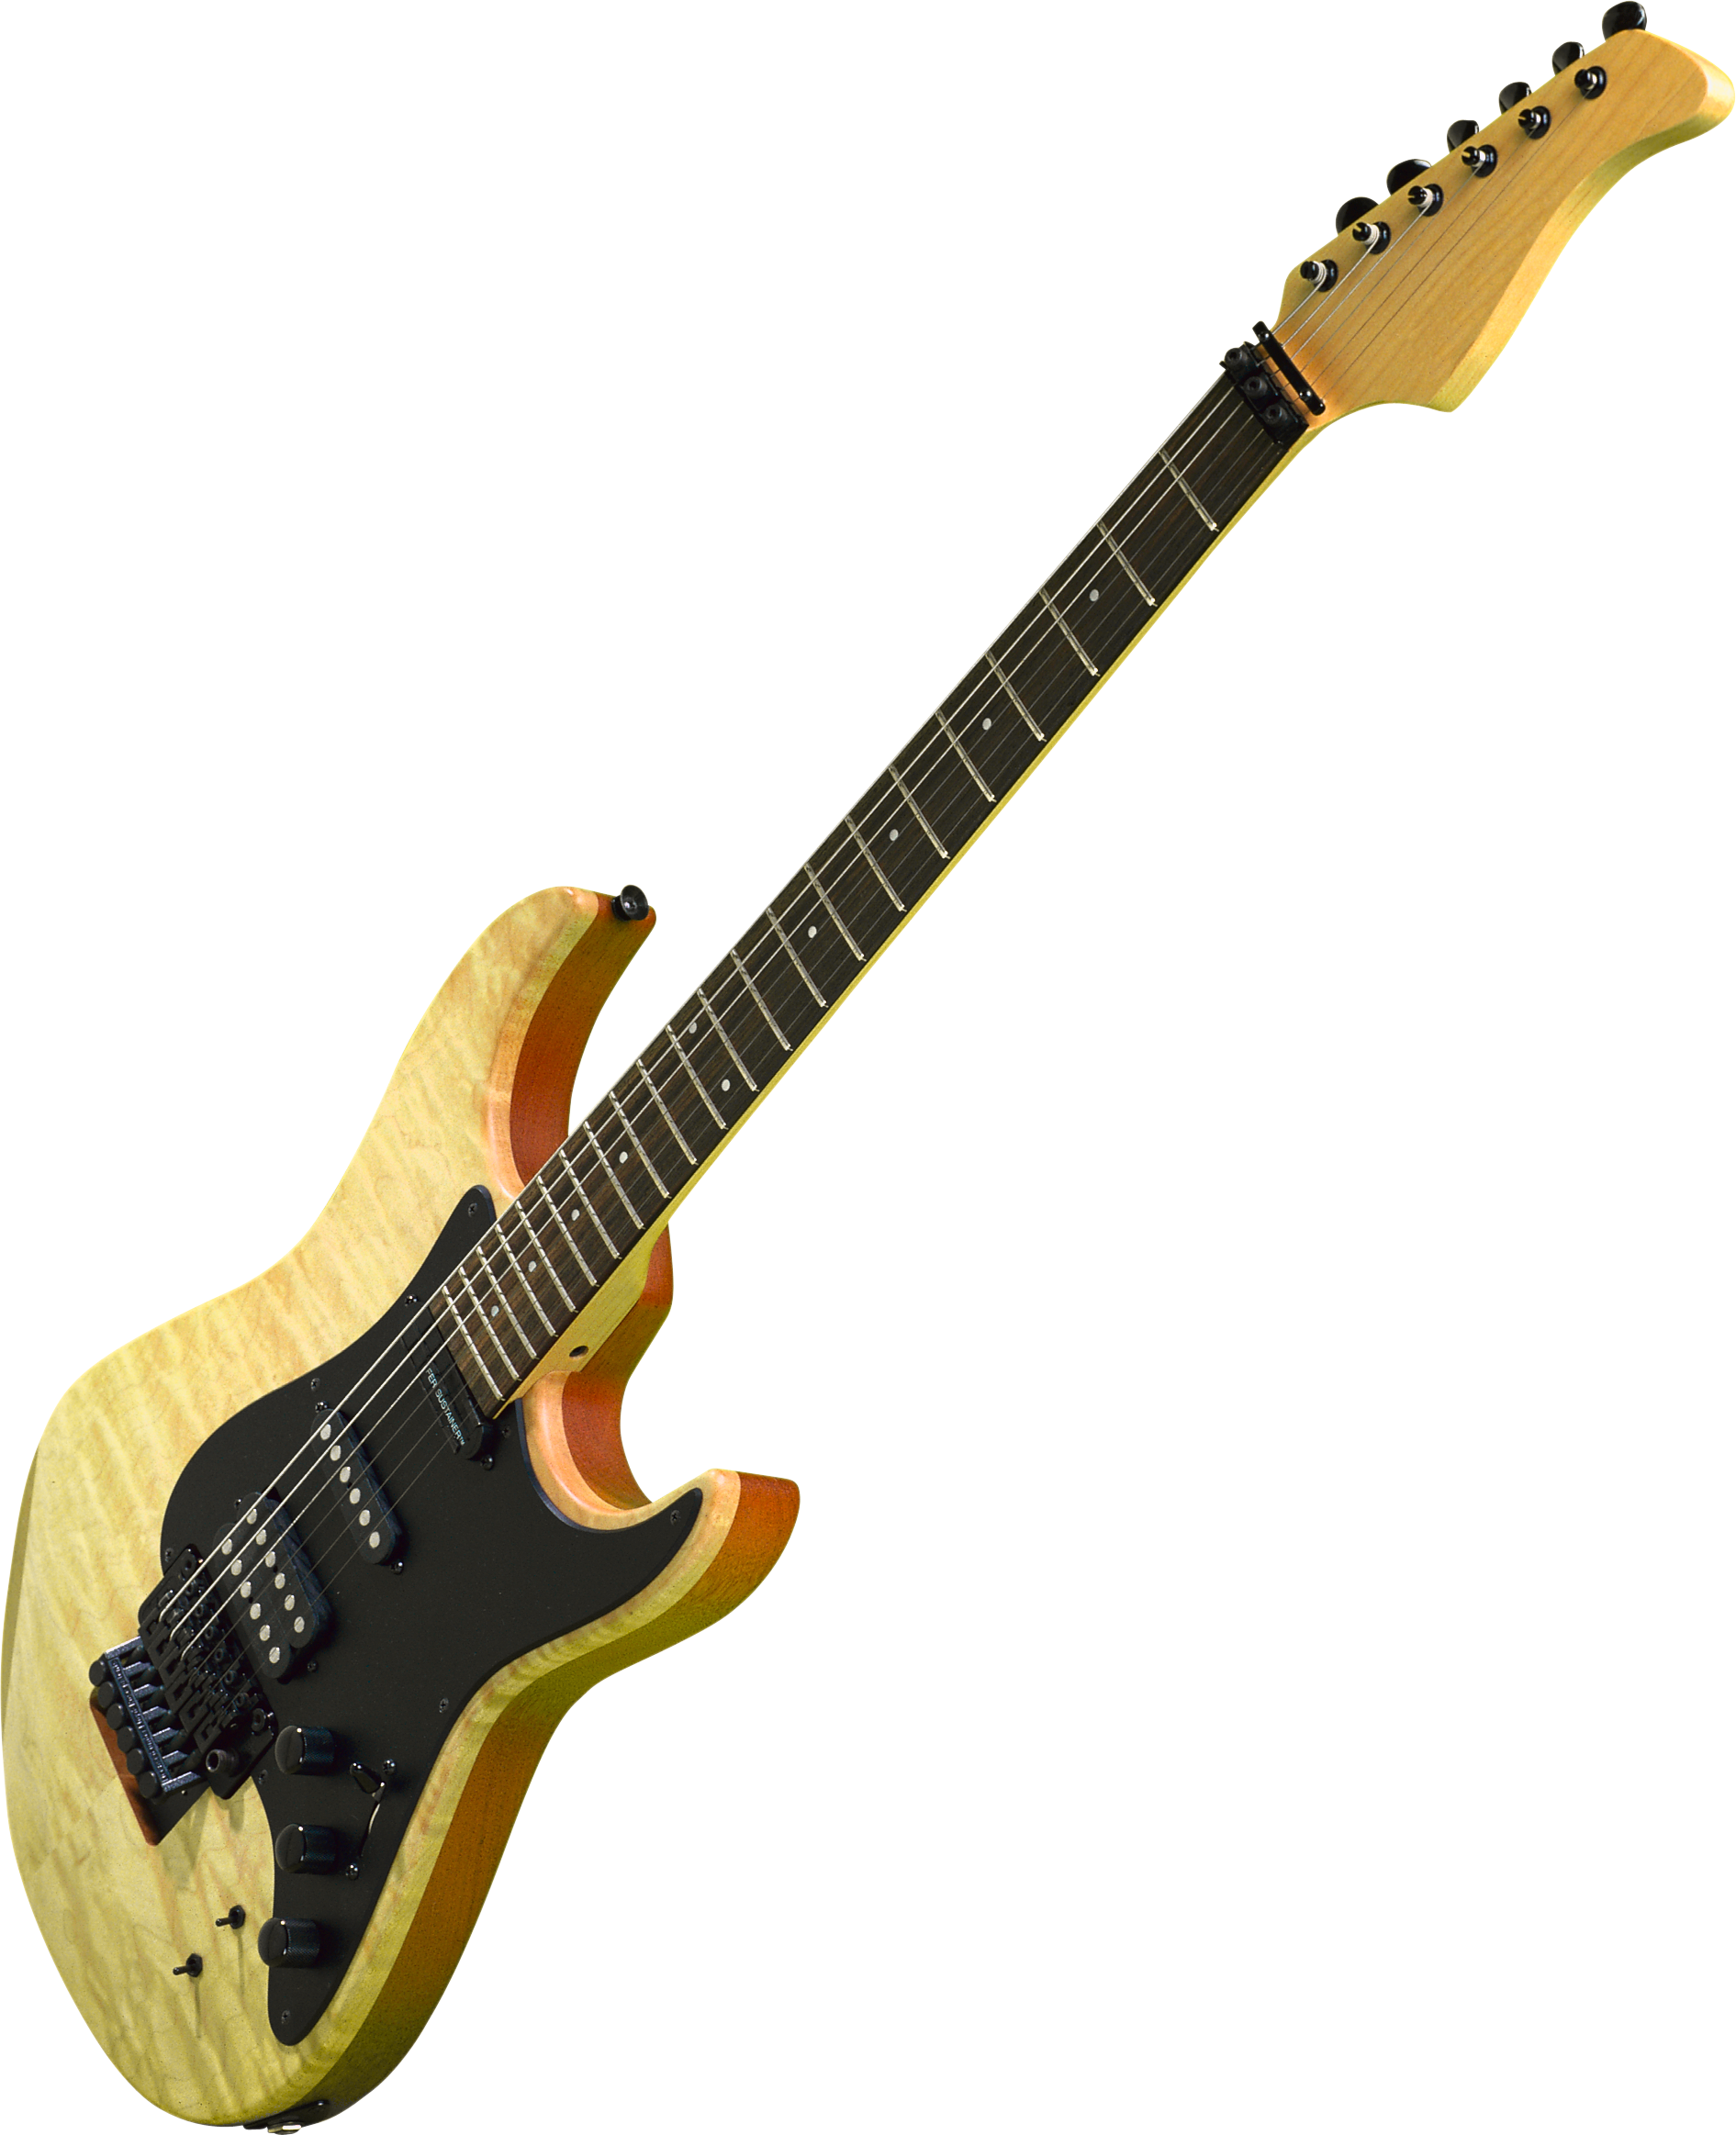 Brown And Black Electric Guitar Illustration Free Stock Photo